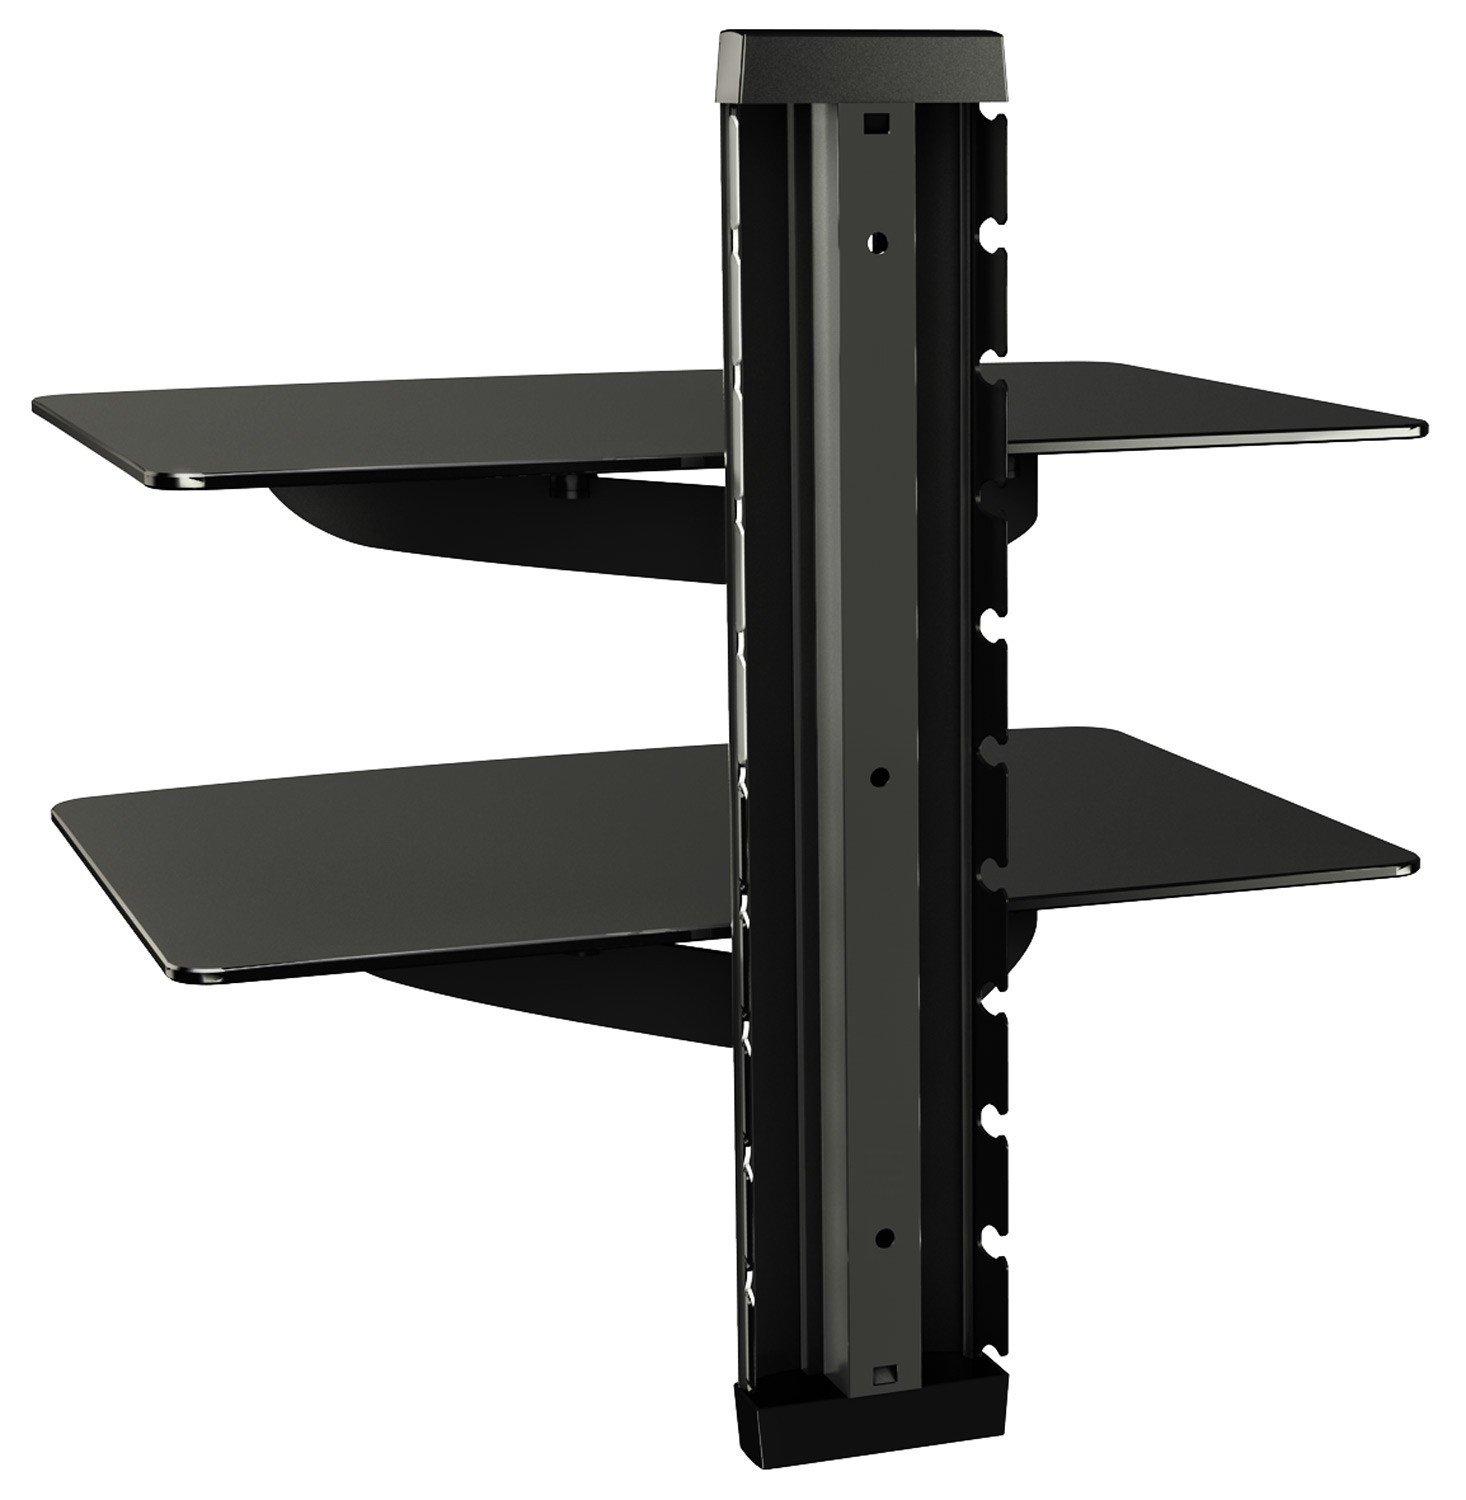 Hifi rack wand  RICOO Wandregal Glas TV Board Hifi Rack Universal: Amazon.de ...